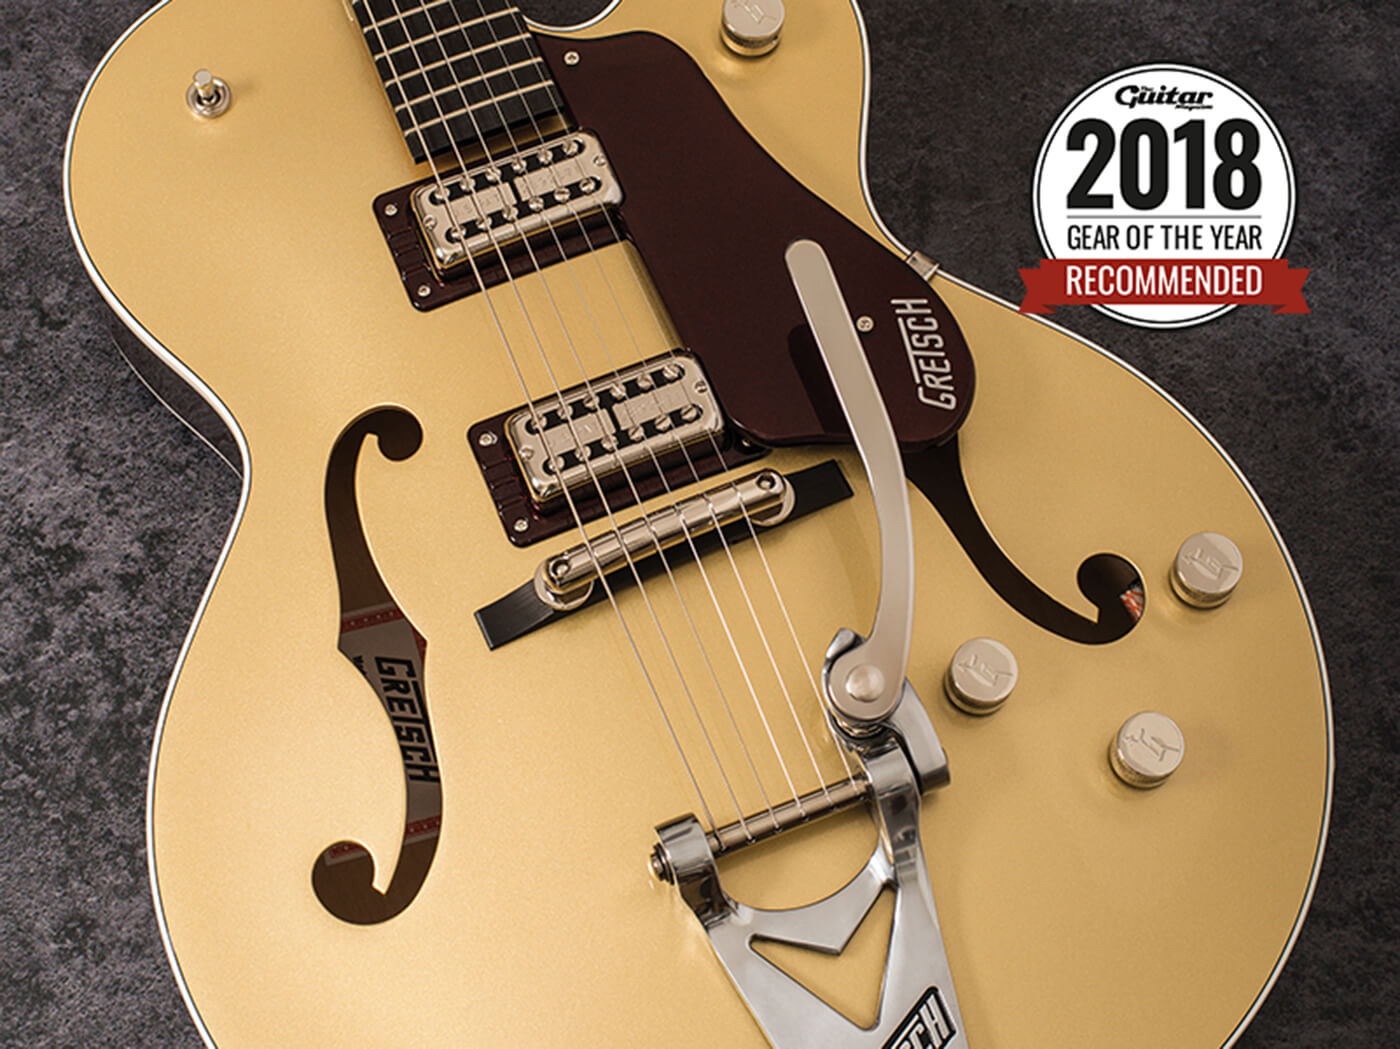 Gear of the Year 2018: Best premium electric guitars - Guitar com